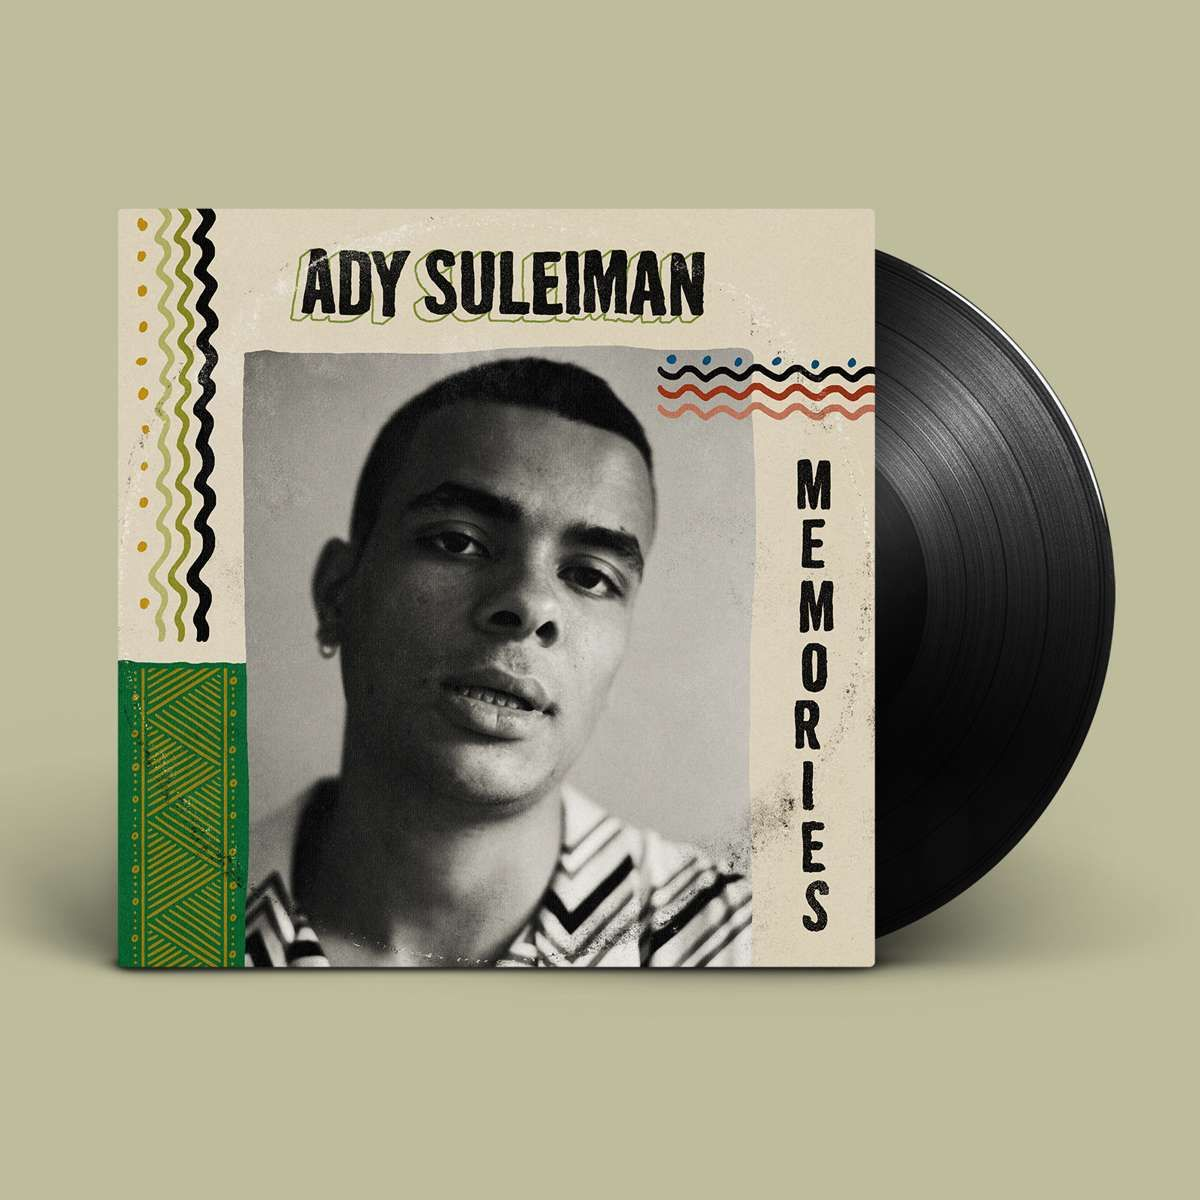 Ady Suleiman Longing For Your Love memories (vinyl)